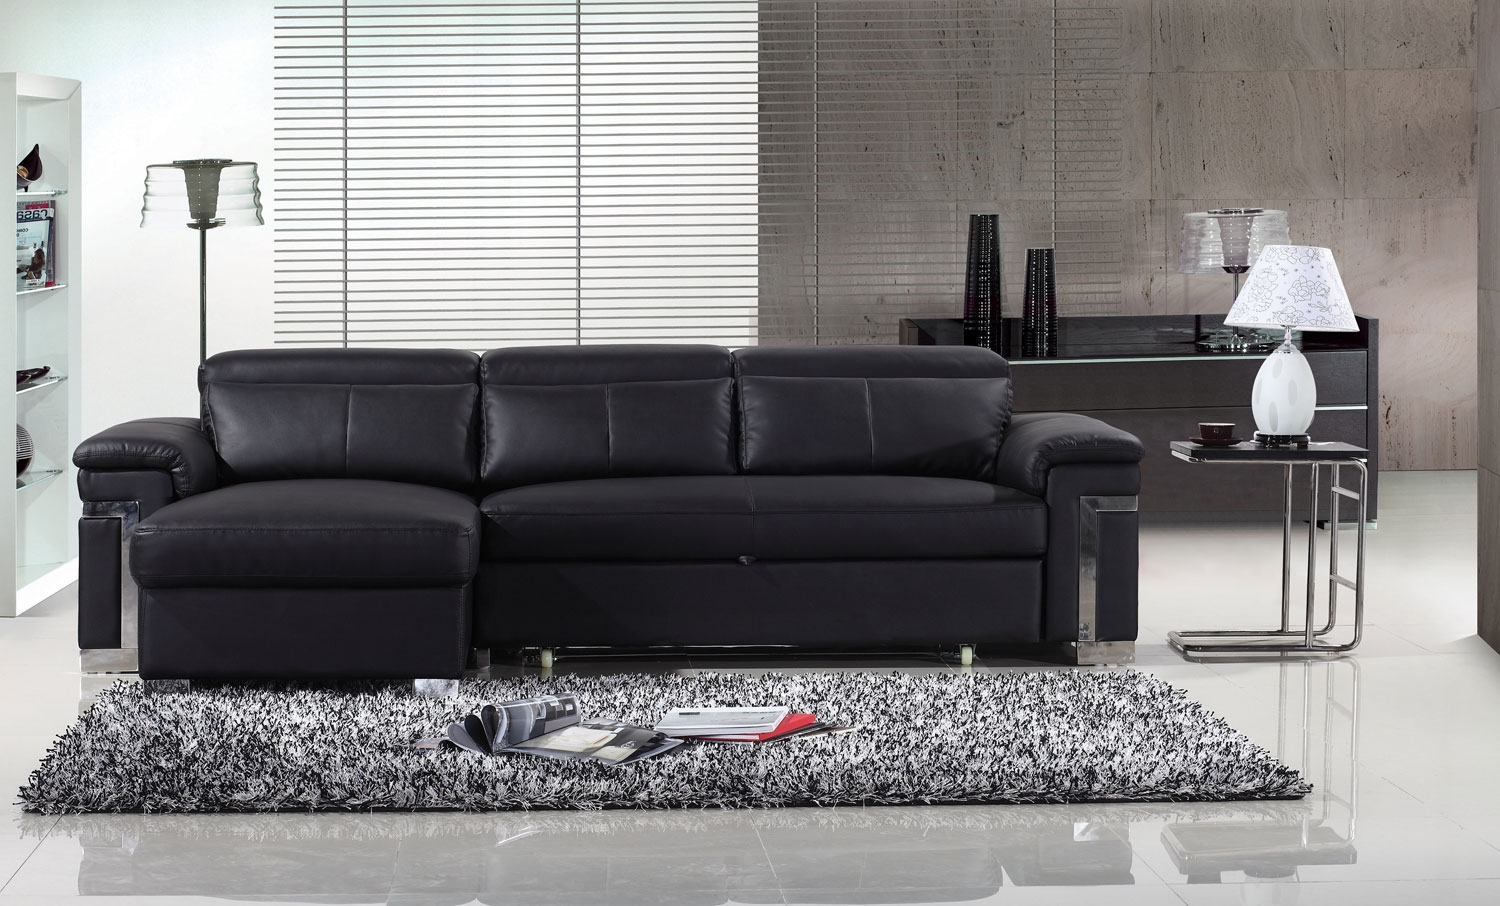 How to Clean Your Black Leather Sofa?